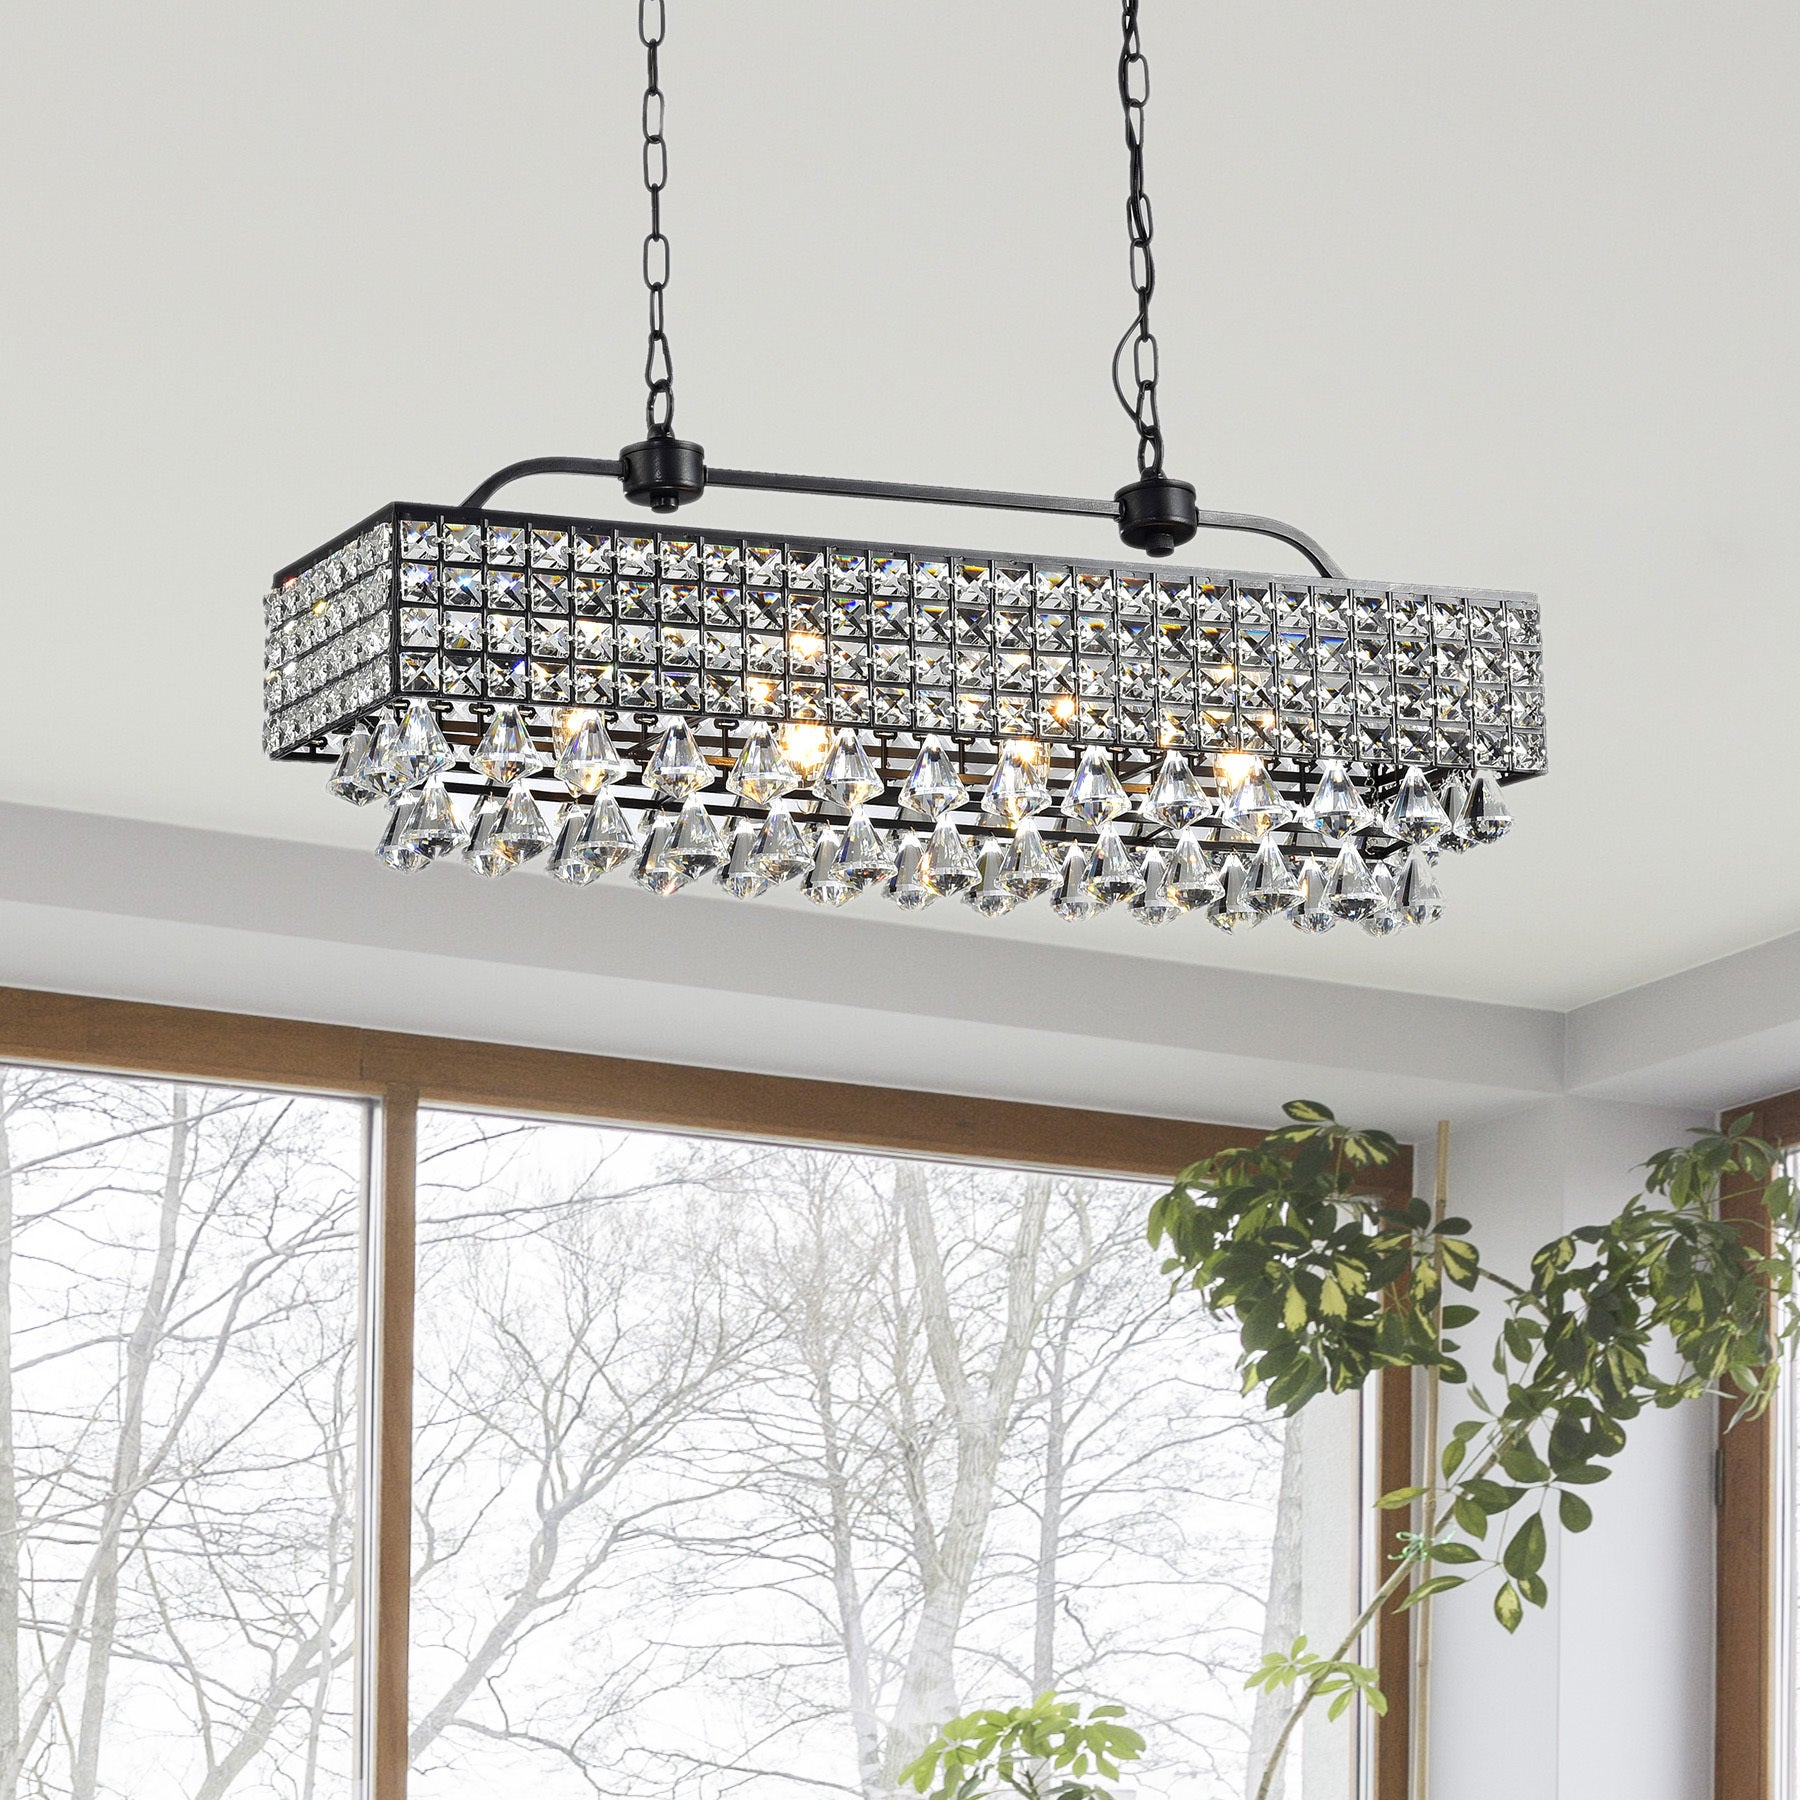 Shop jolie antique black 5 light rectangular crystal chandelier free shipping today overstock com 10702078